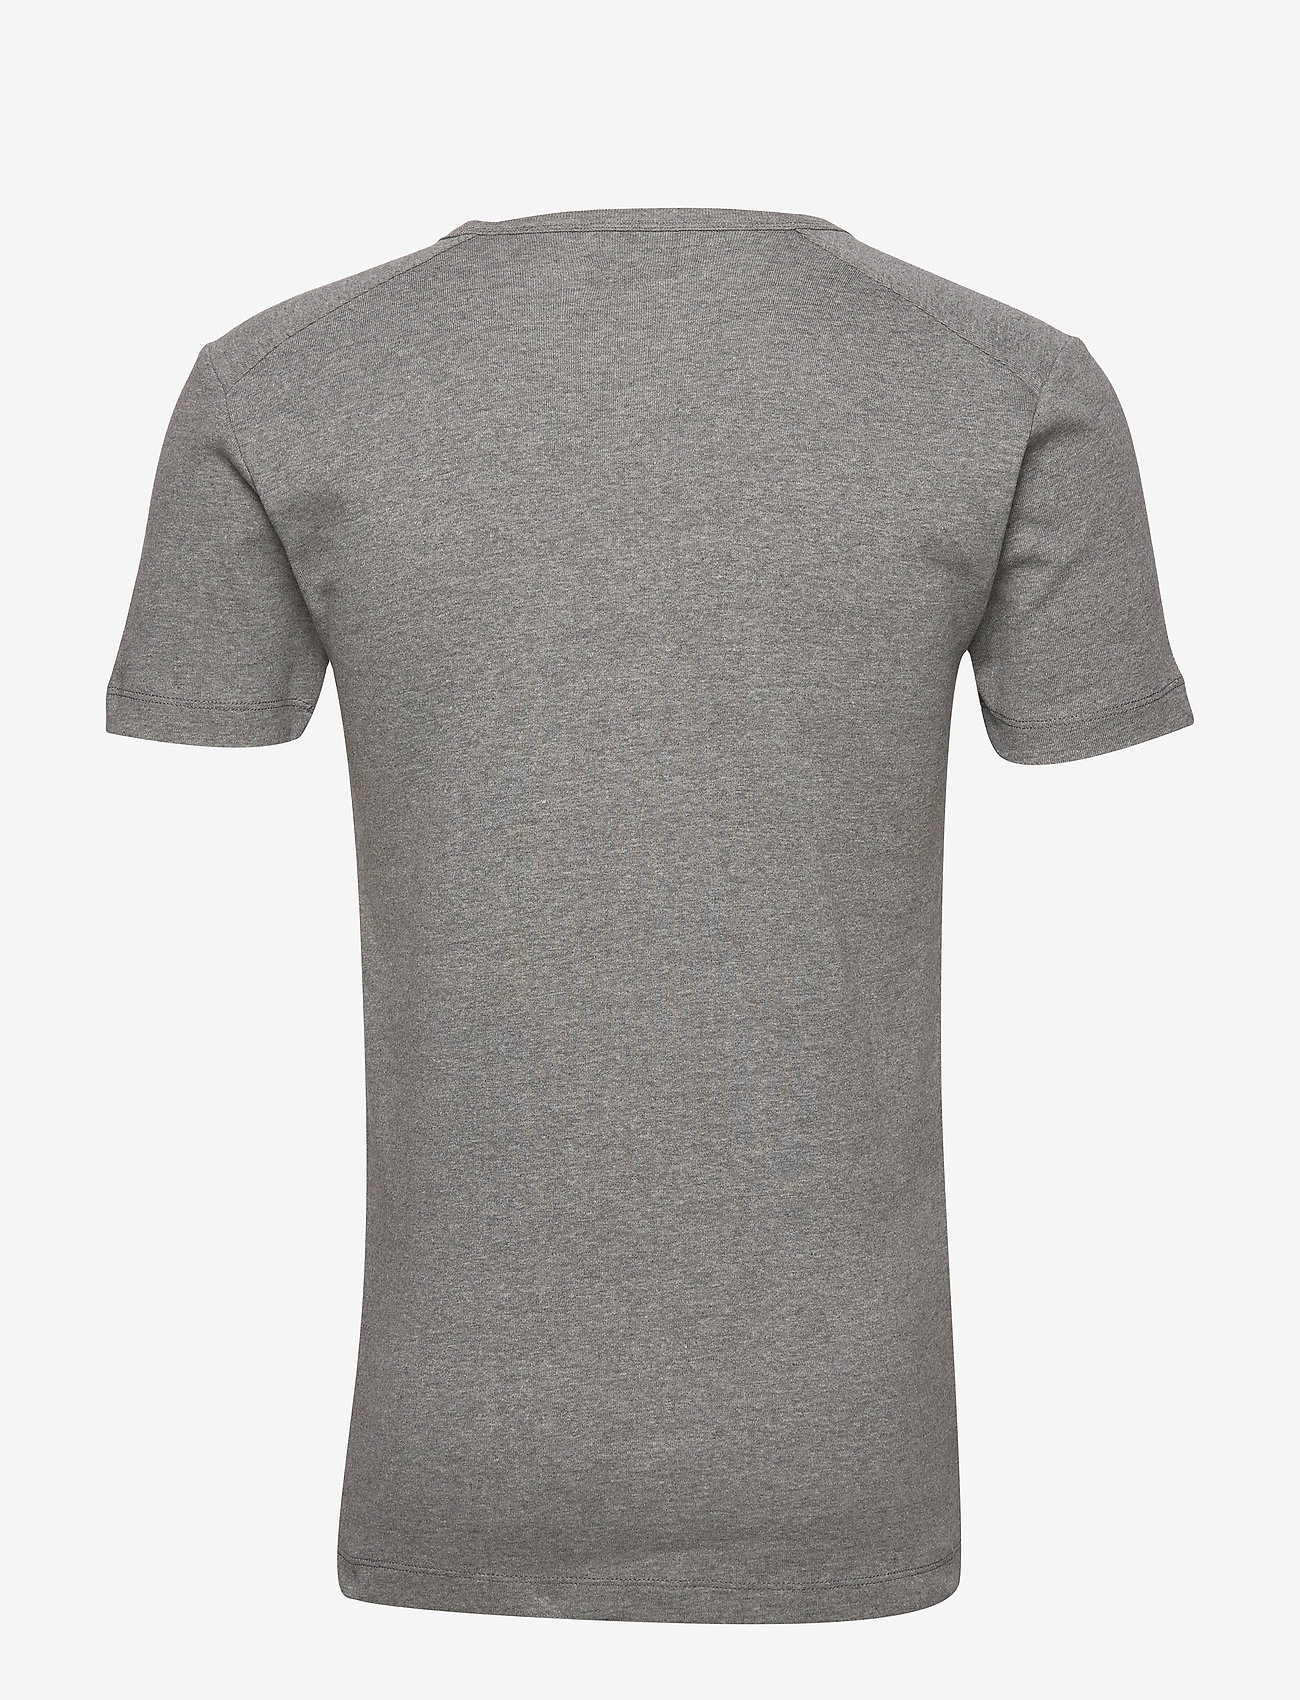 Esprit Casual T-Shirts - T-skjorter MEDIUM GREY - Menn Klær